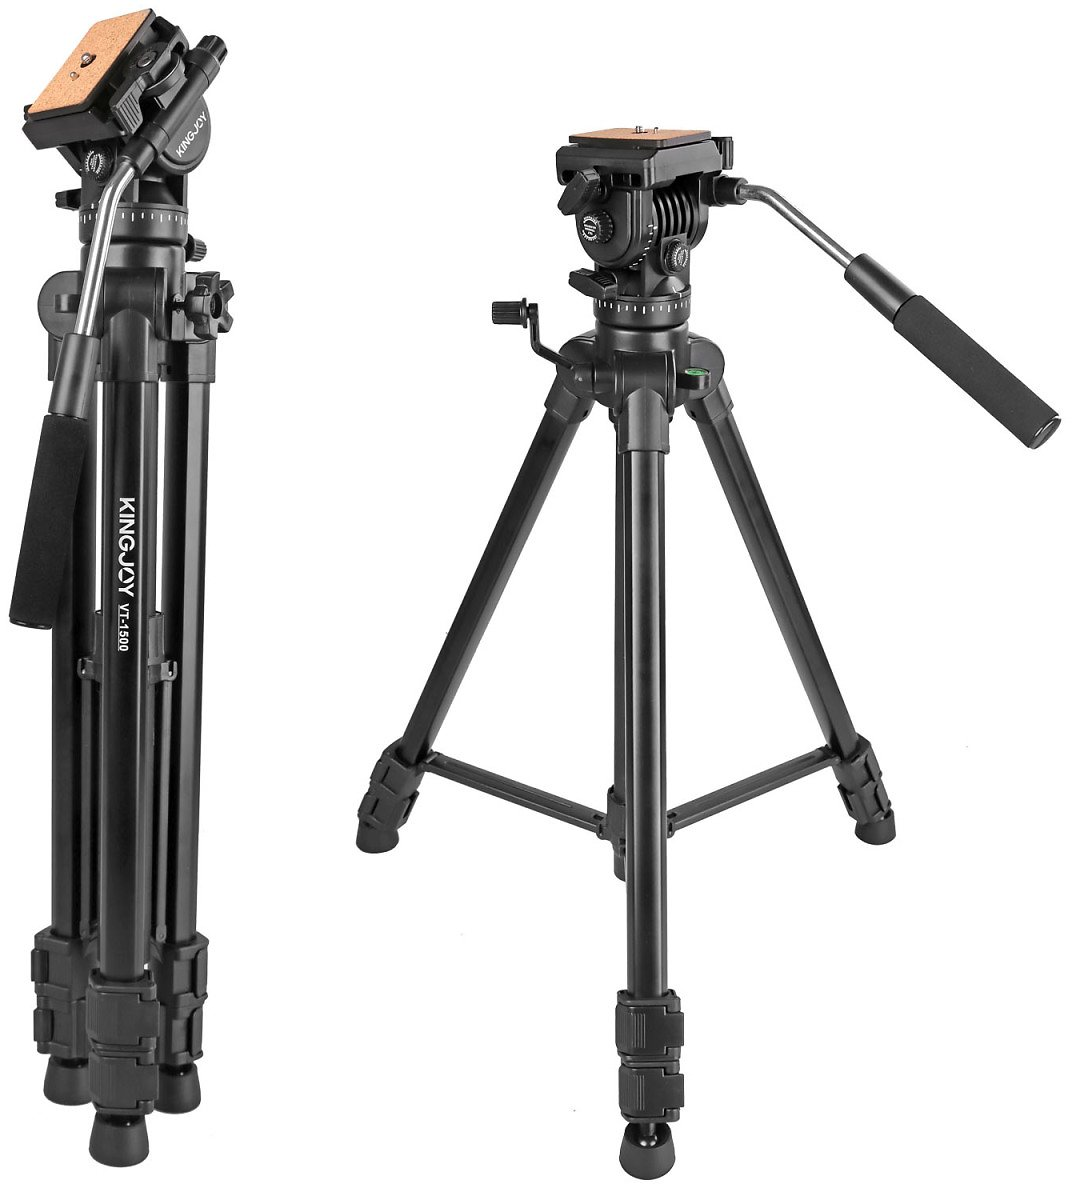 (Only $72.99) Kamisafe VT-1500 Video Tripod with Fluid Head for DSLR Camera